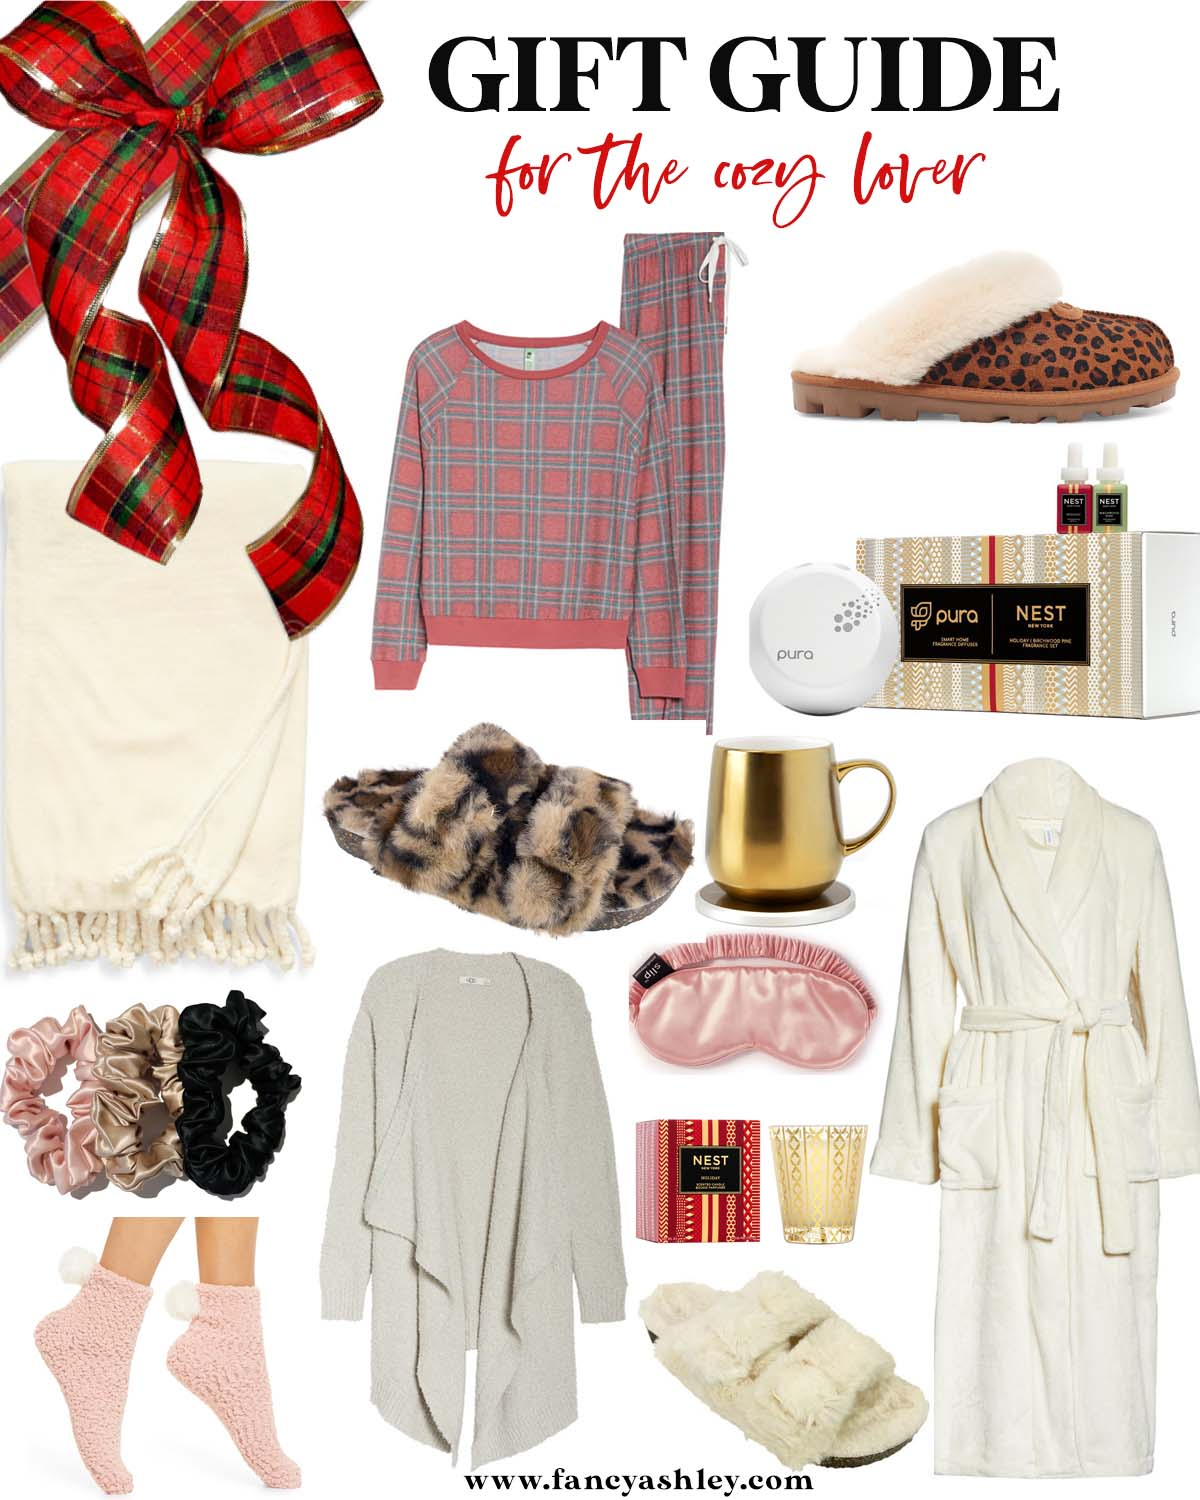 Cozy Gifts by popular Houston life and style blog, Fancy Ashley: collage image of plaid pajamas, cream color rob, grey cardigan, pink silk sleep mask, leopard print UGG slippers, Nest spray, gold mug and mug warmer, cream blanket, Nest candle, silk scrunchies, pink fuzzy socks, and fuzzy slipper sandals.